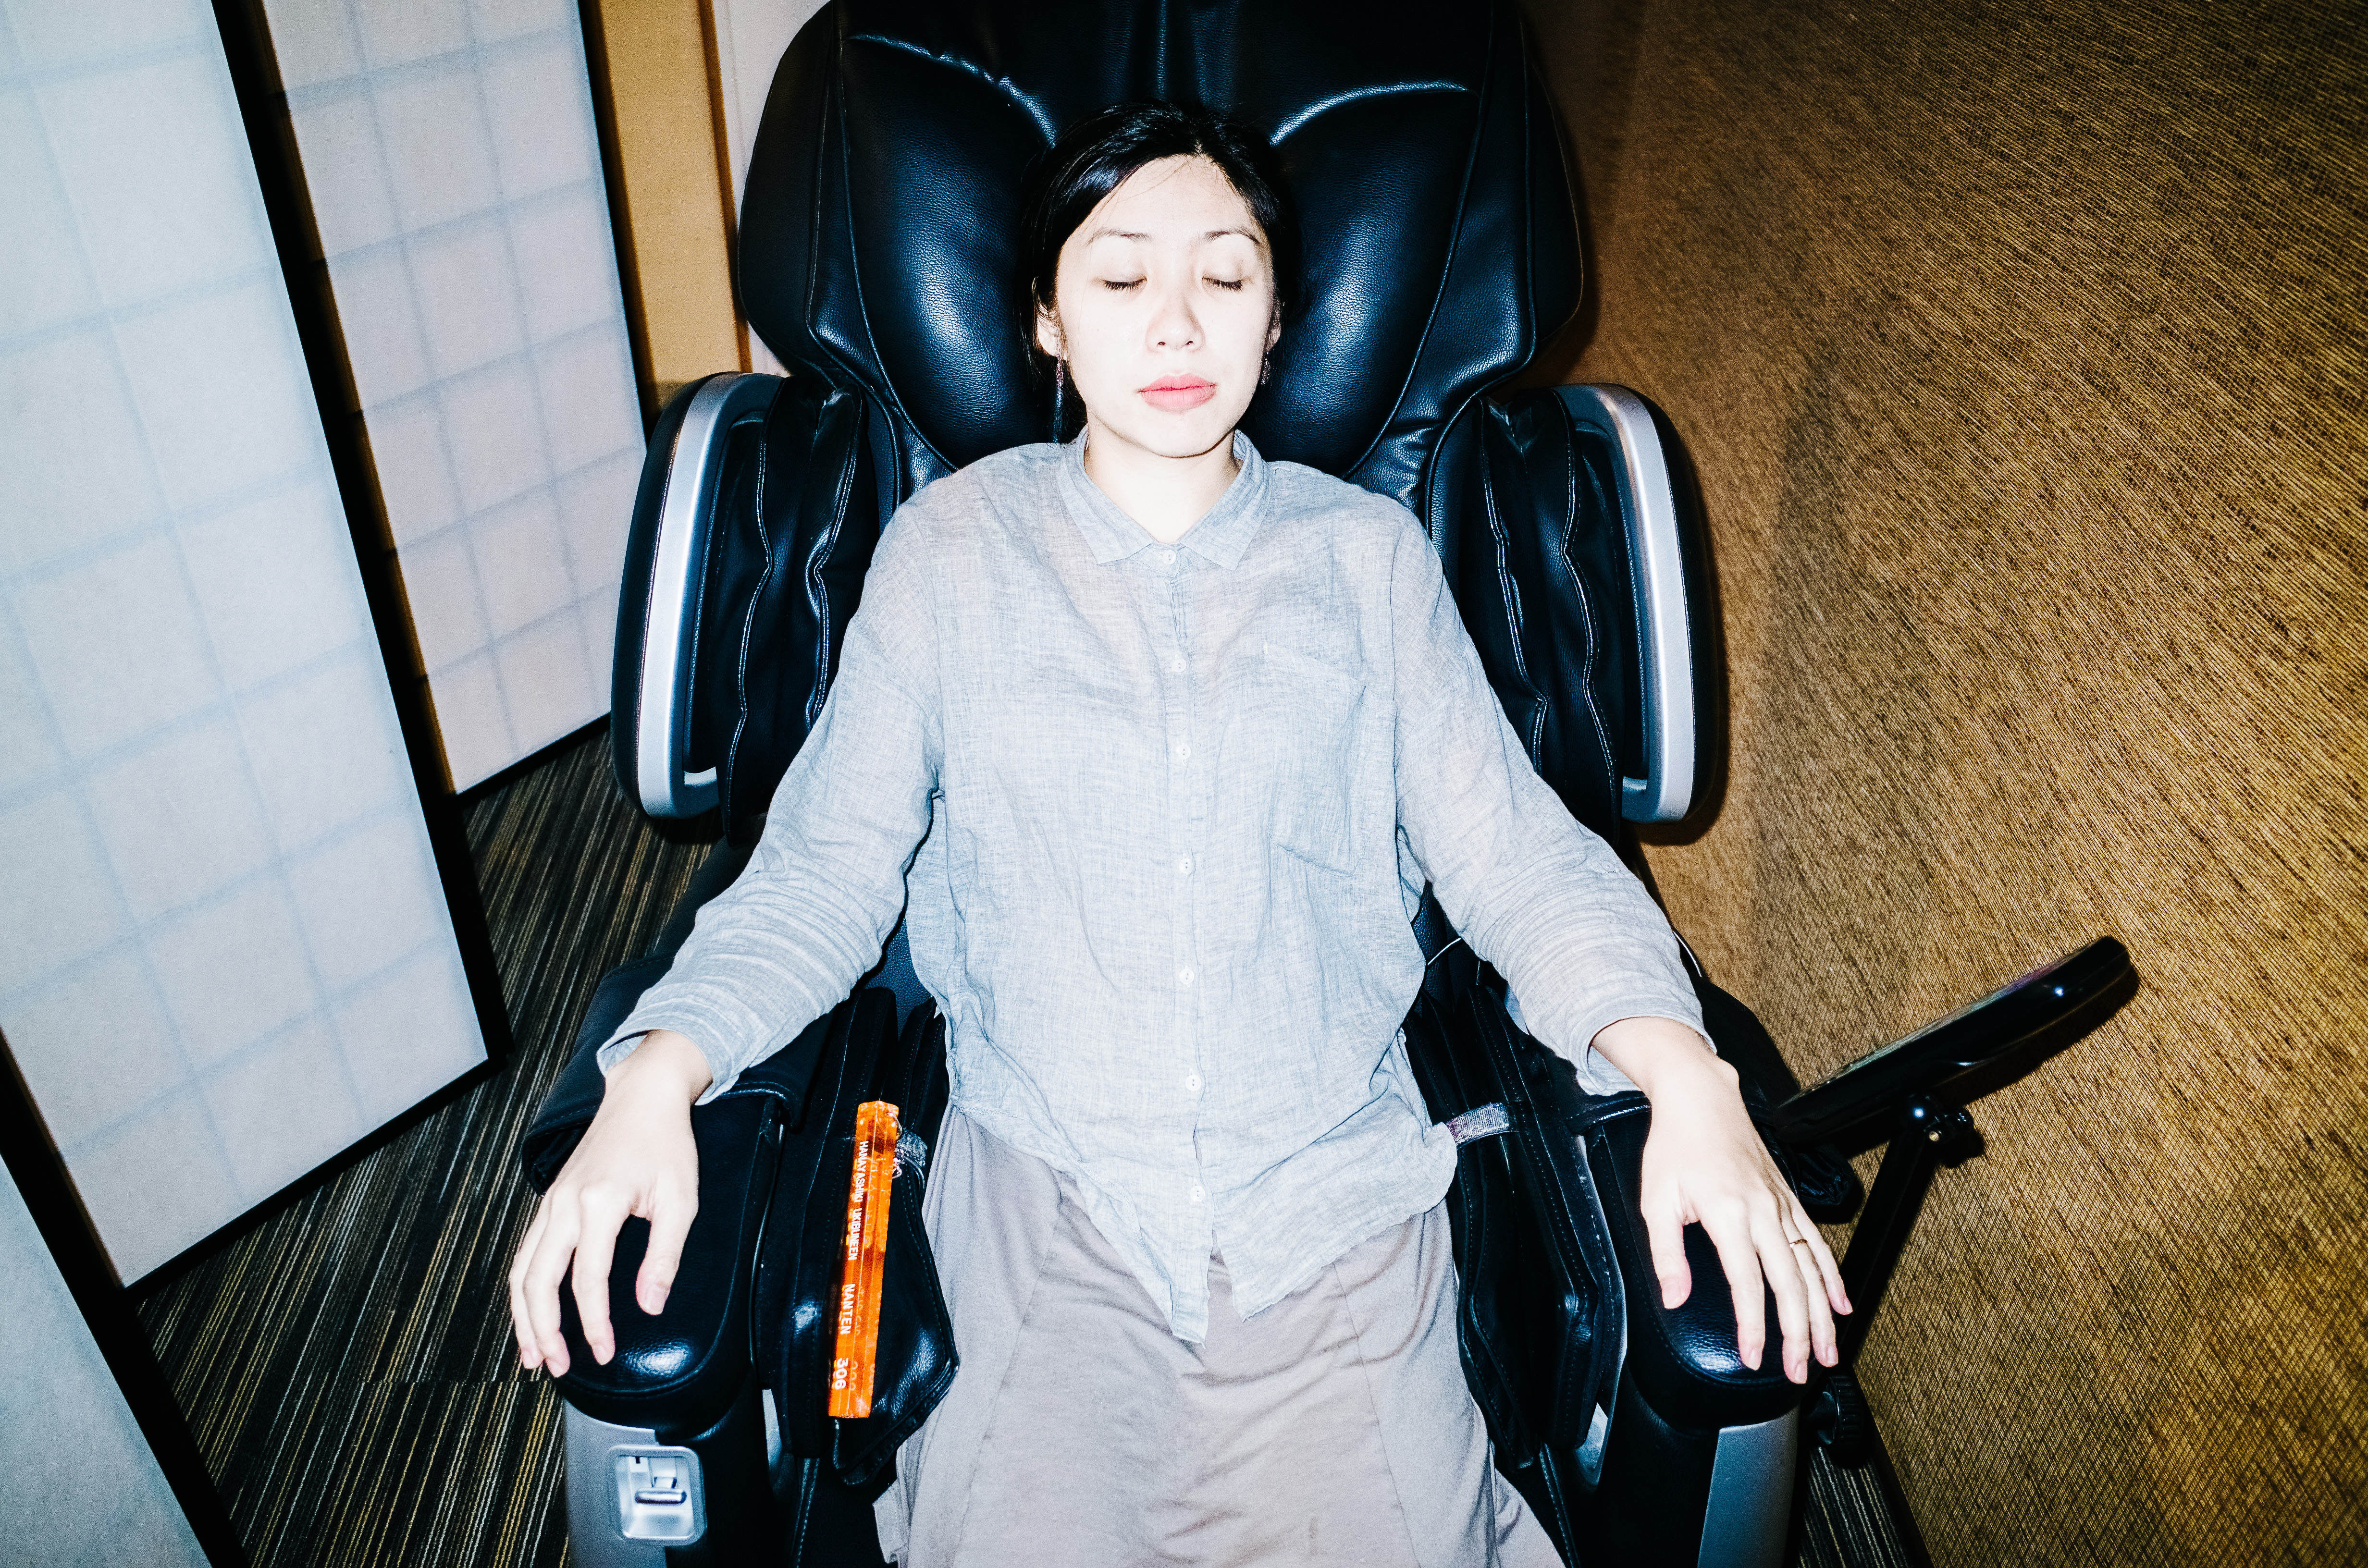 Cindy in massage chair. Uji, Kyoto 2017